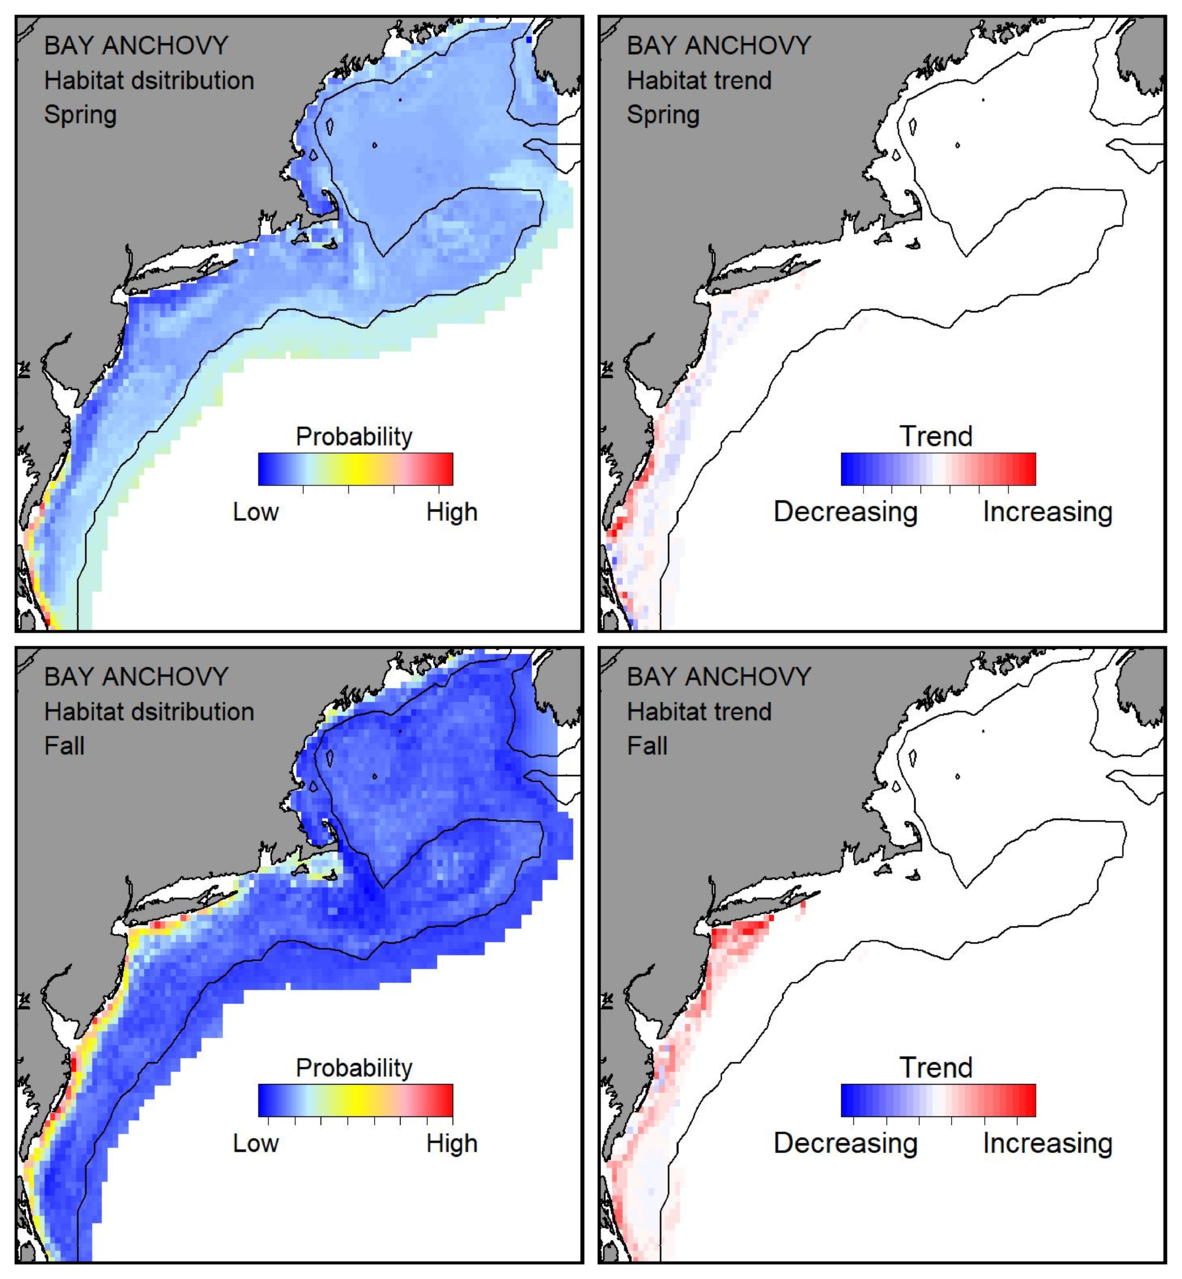 Top row: Probable habitat distribution for bay anchovy showing the highest concentration and increasing trend in the Gulf of Maine during the spring. Bottom row: Probable habitat distribution for bay anchovy showing the highest concentration and increasing trend in the Gulf of Maine during the fall.